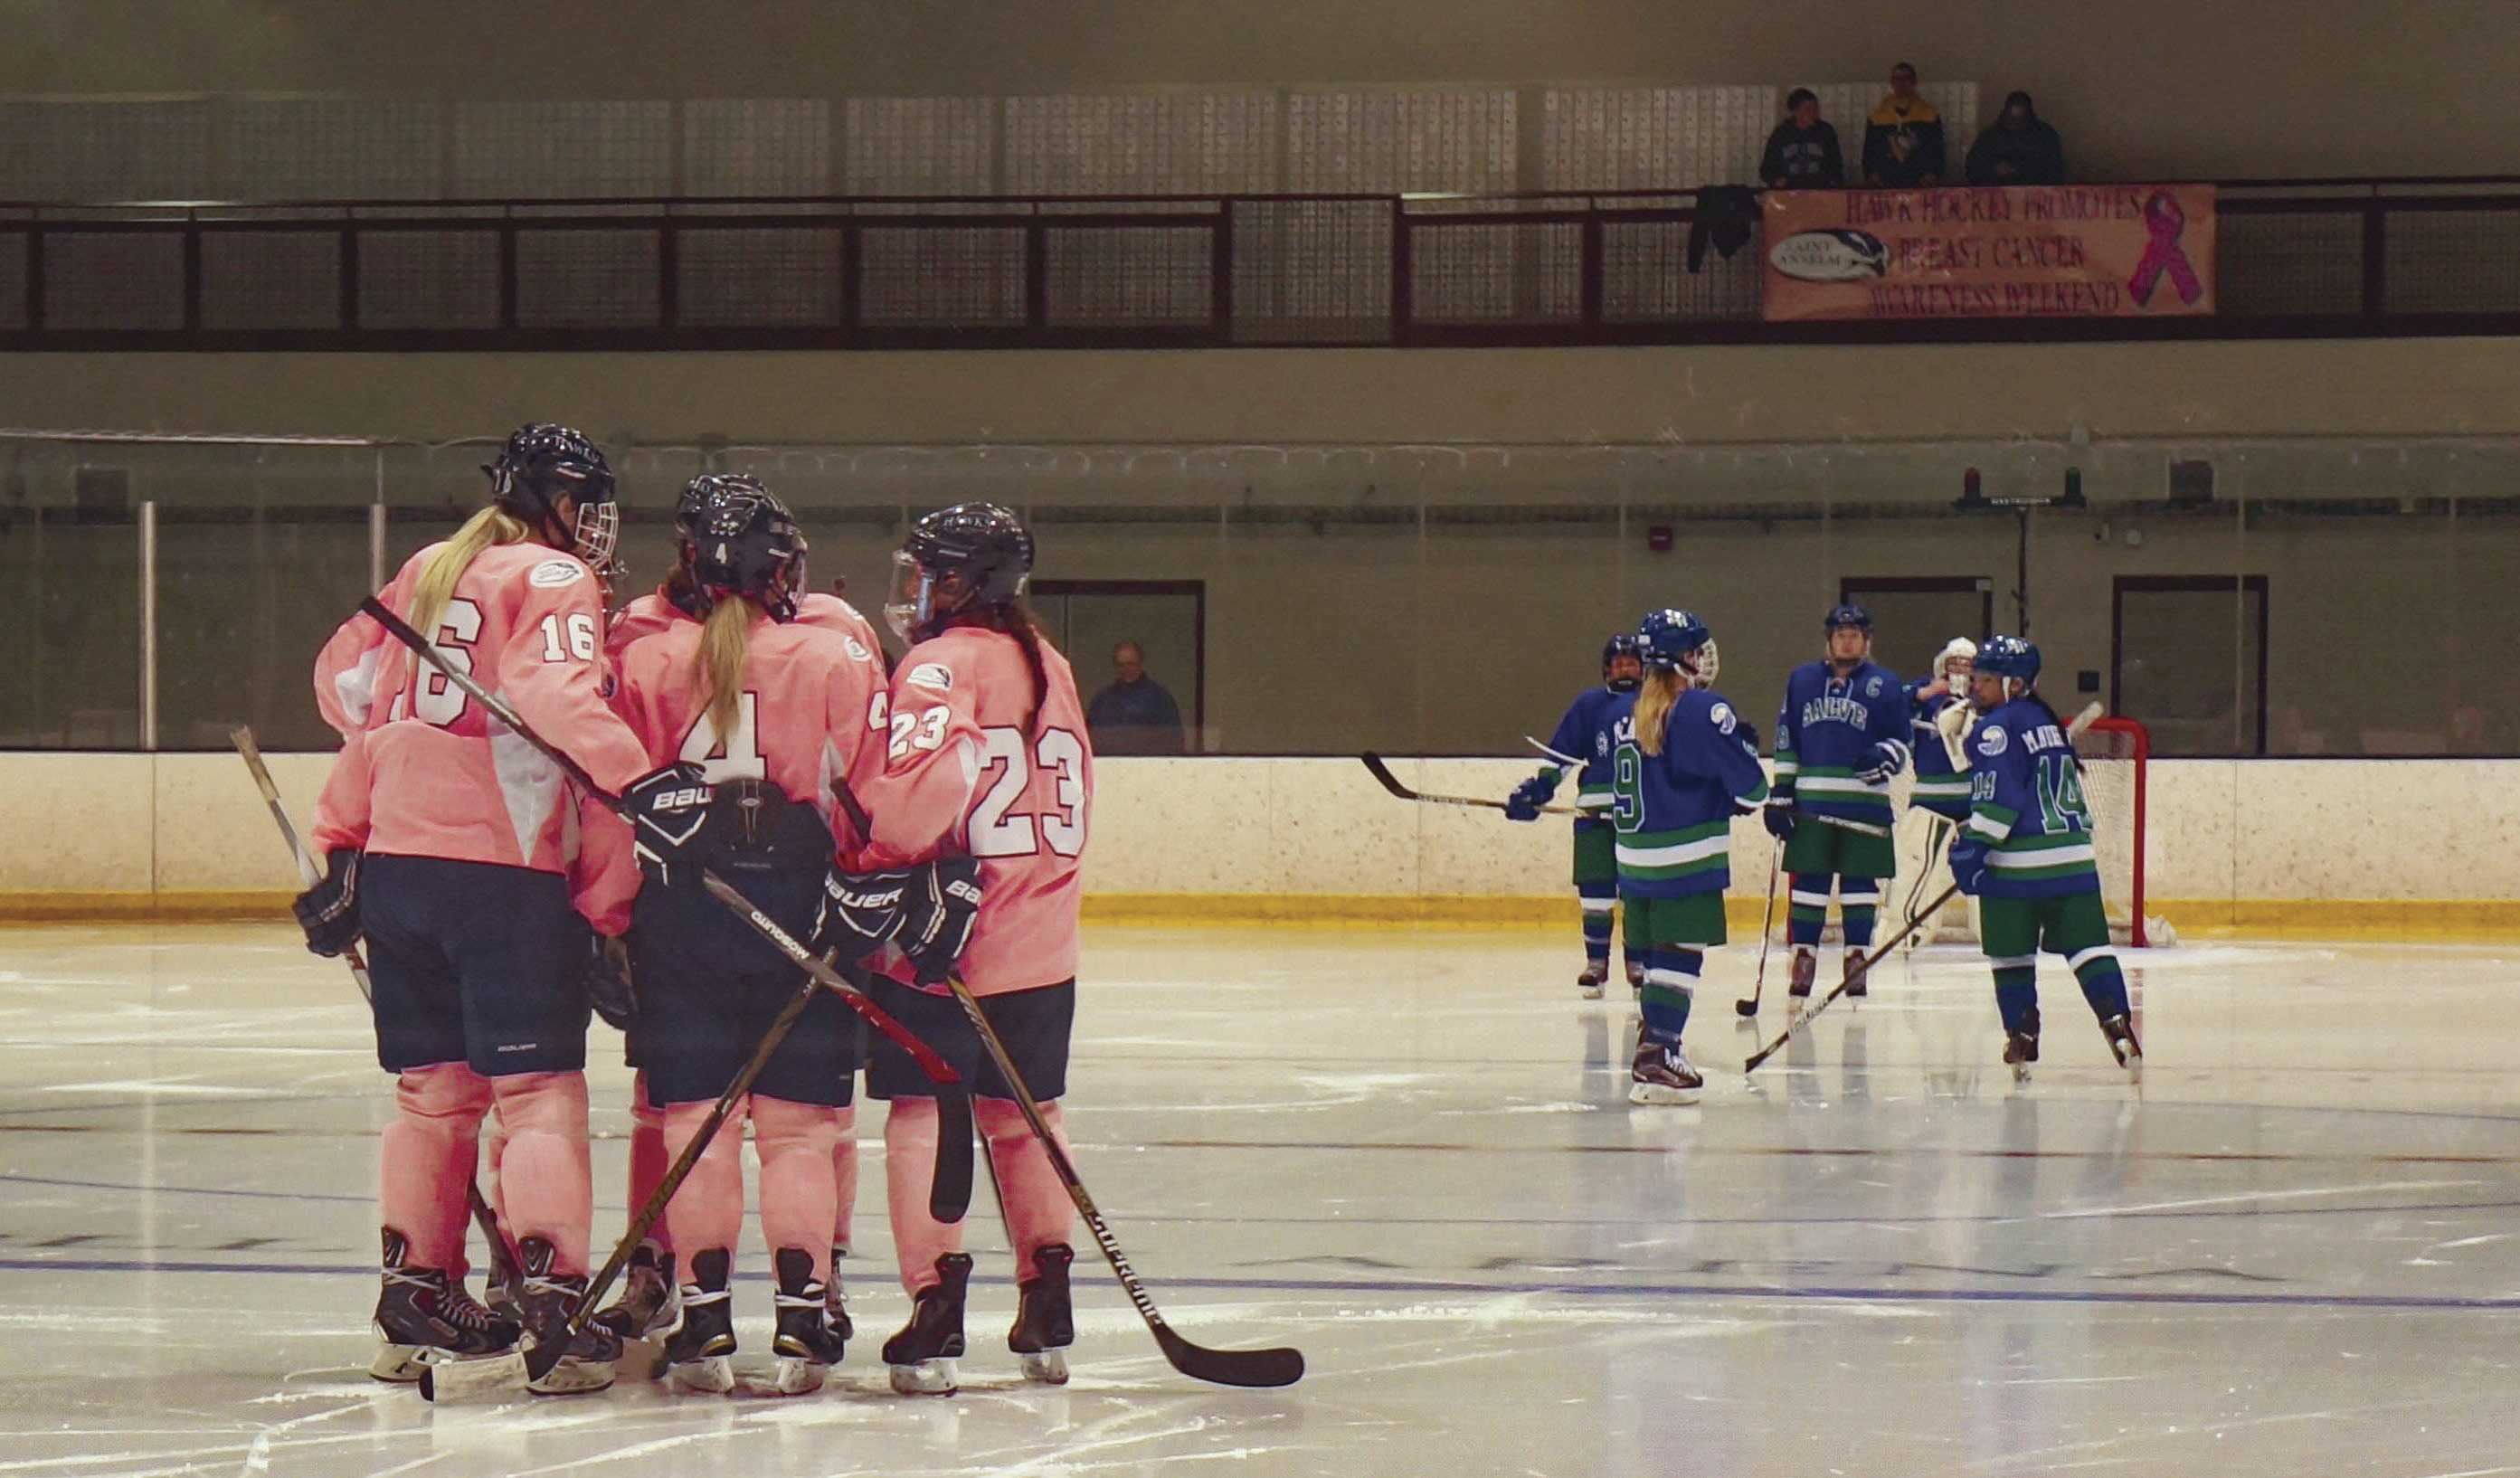 Maura Kieft, Sara McNamara, and Martha Findley (left to right) huddle on ice.